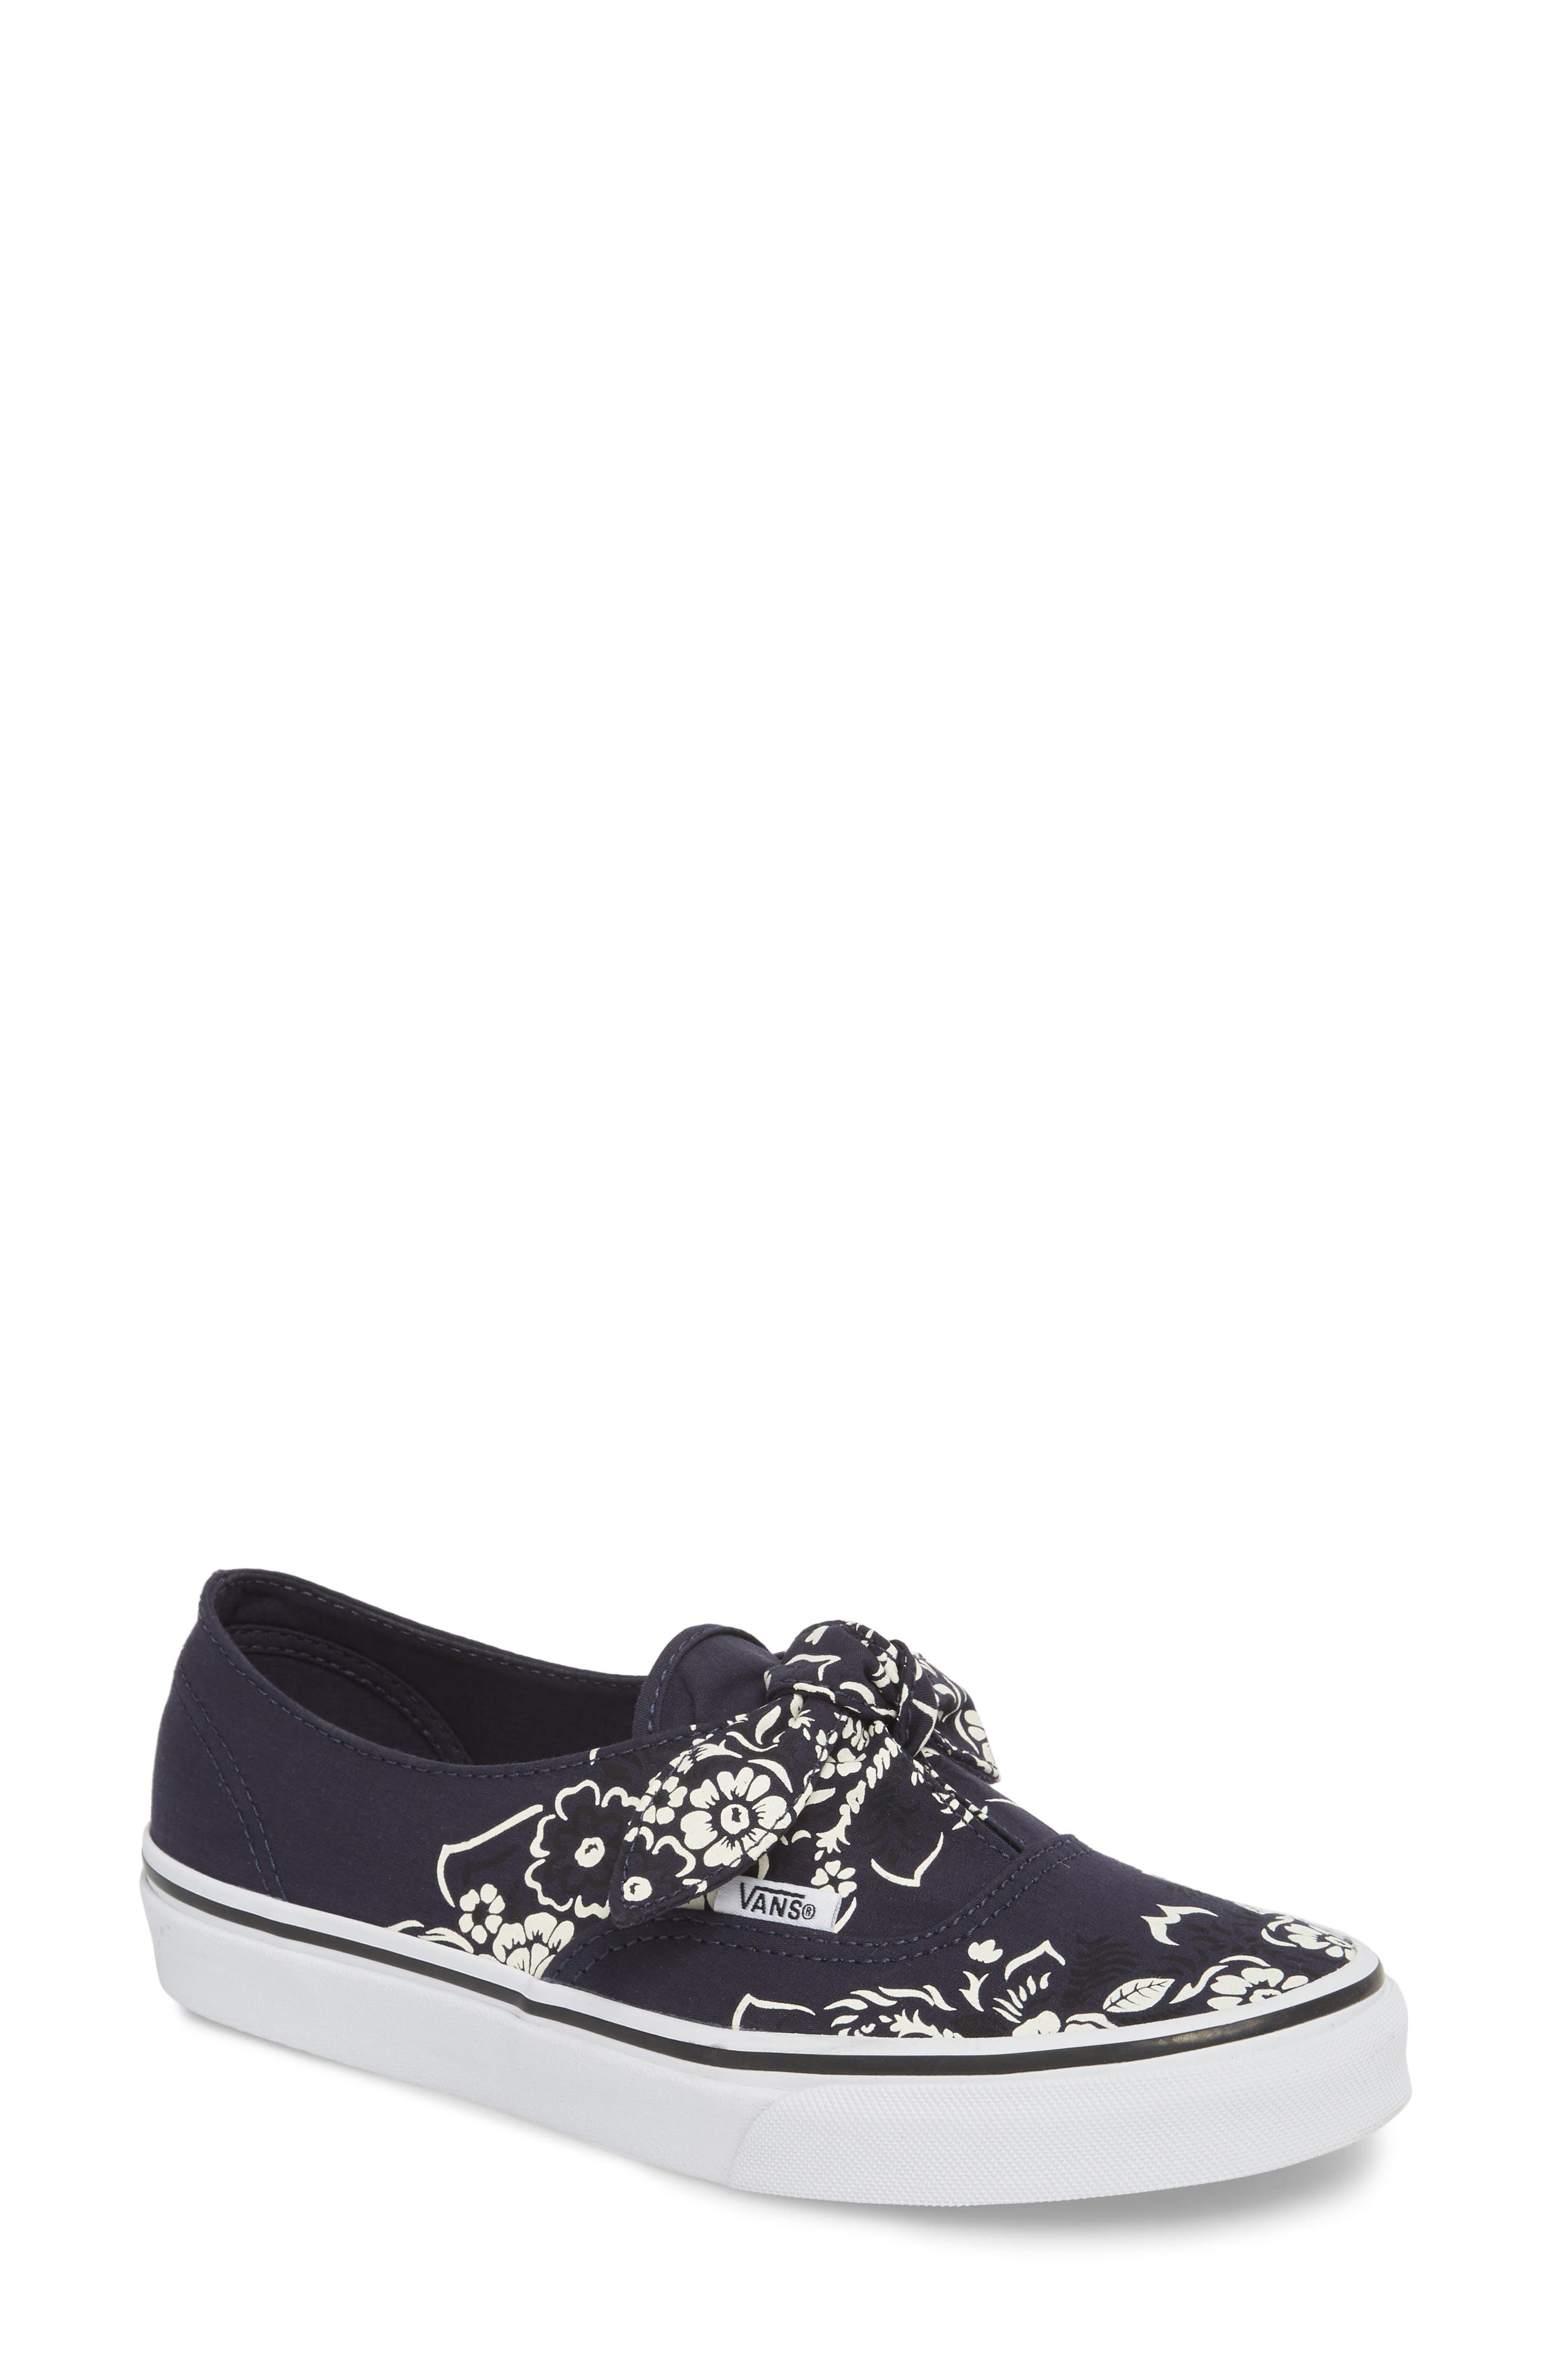 UA Authentic Knotted Floral Bandana Slip-On Sneaker,                             Main thumbnail 1, color,                             PARISIAN NIGHT/ TRUE WHITE